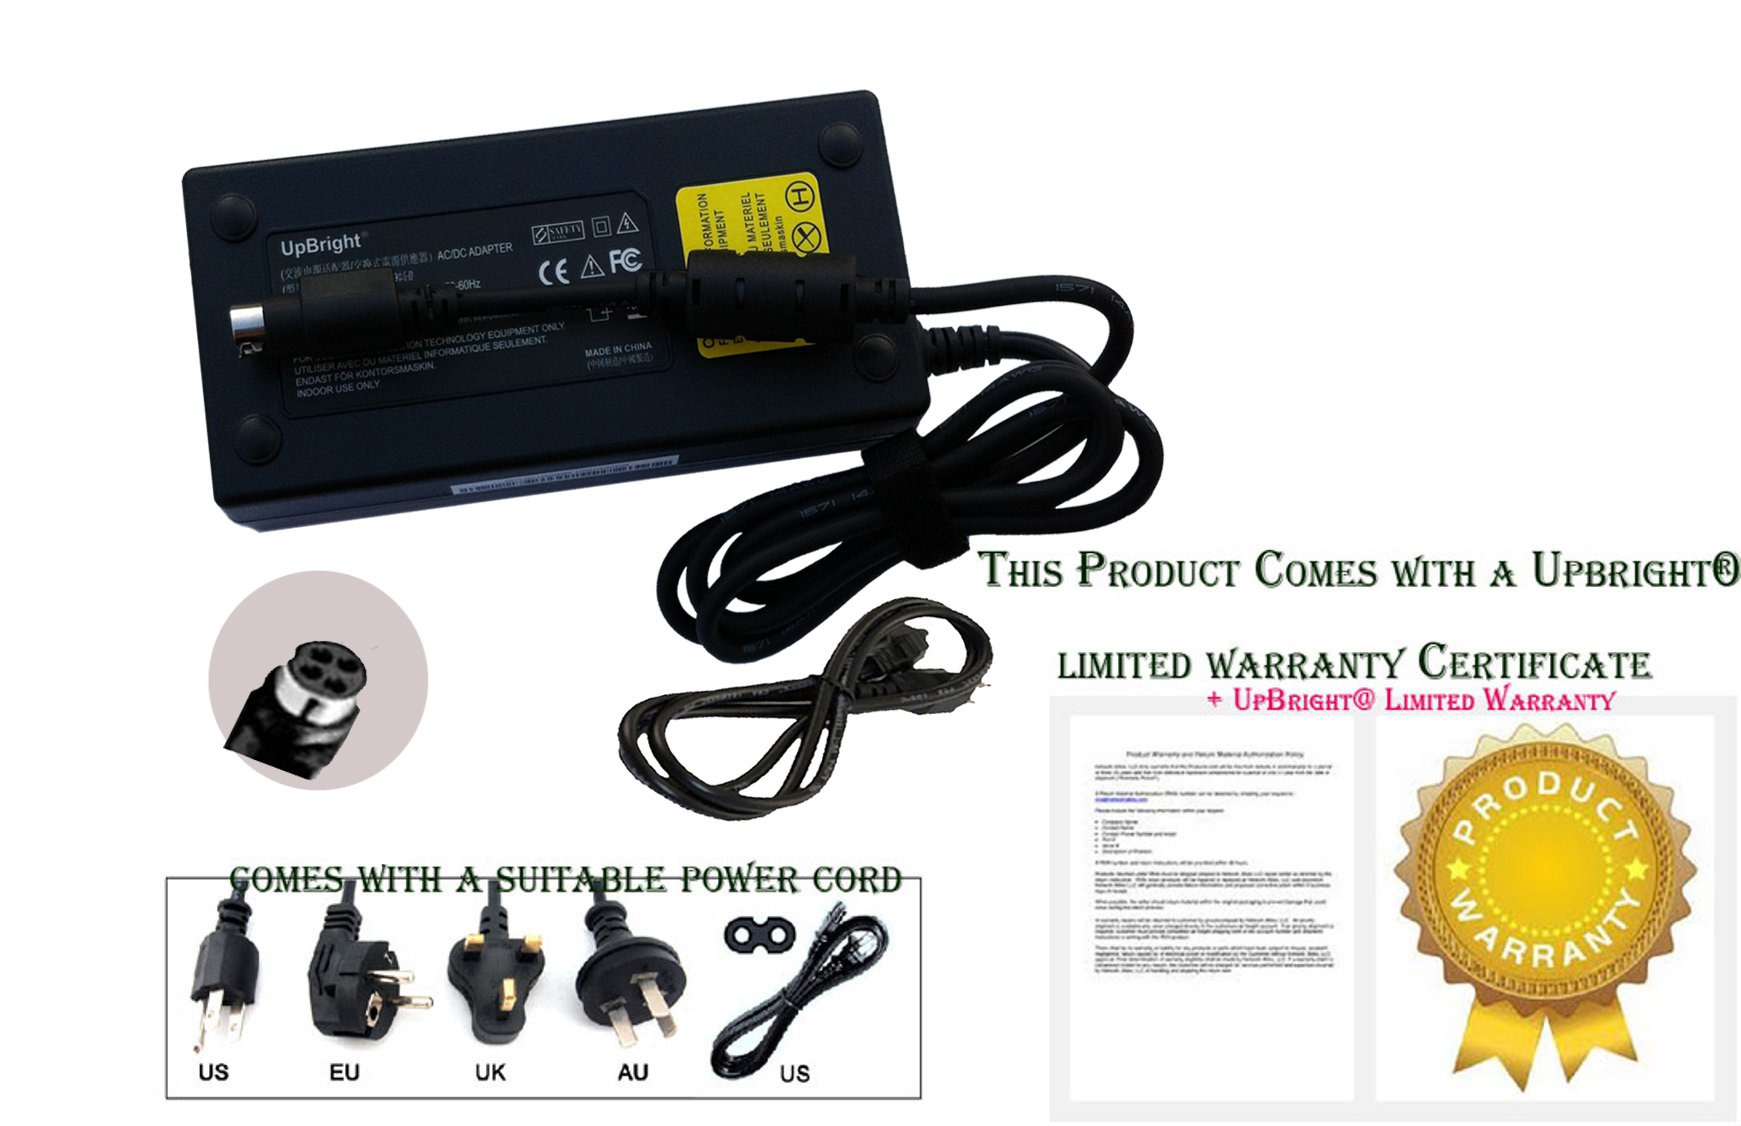 UpBright NEW 4-Femal-Pin 19V AC / DC Adapter For Sager NP8275 NP8275-S P170SM P170SM-A NP8295 P 177SM P177SM NP 8295 NP8180 P180HM Clevo Laptop Notebook PC 19VDC Power Supply Cord Charger Mains PSU